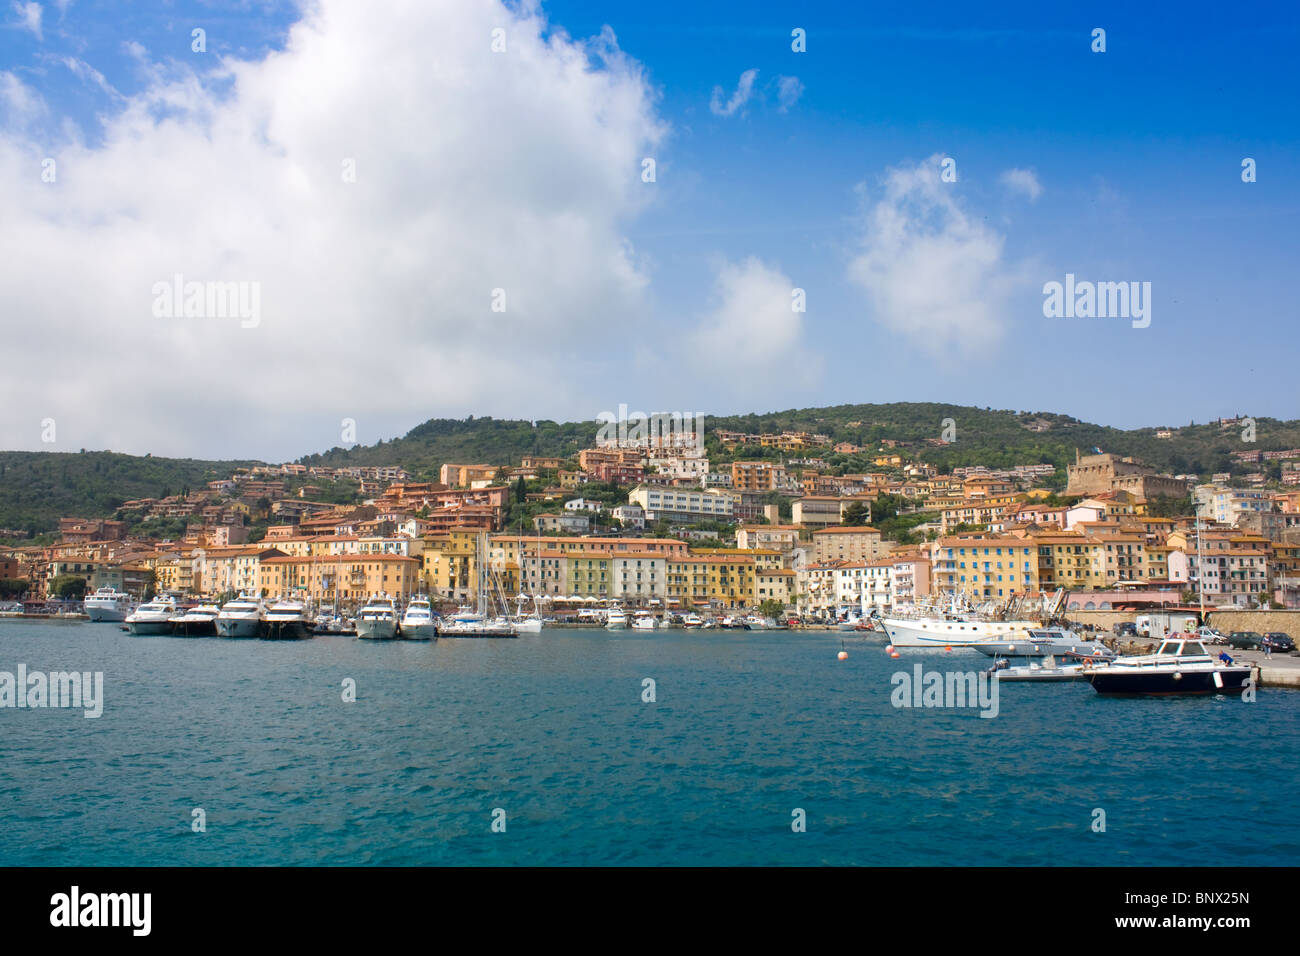 Porto Santo Stefano, Tuscany, Italy - View From The Sea. - Stock Image